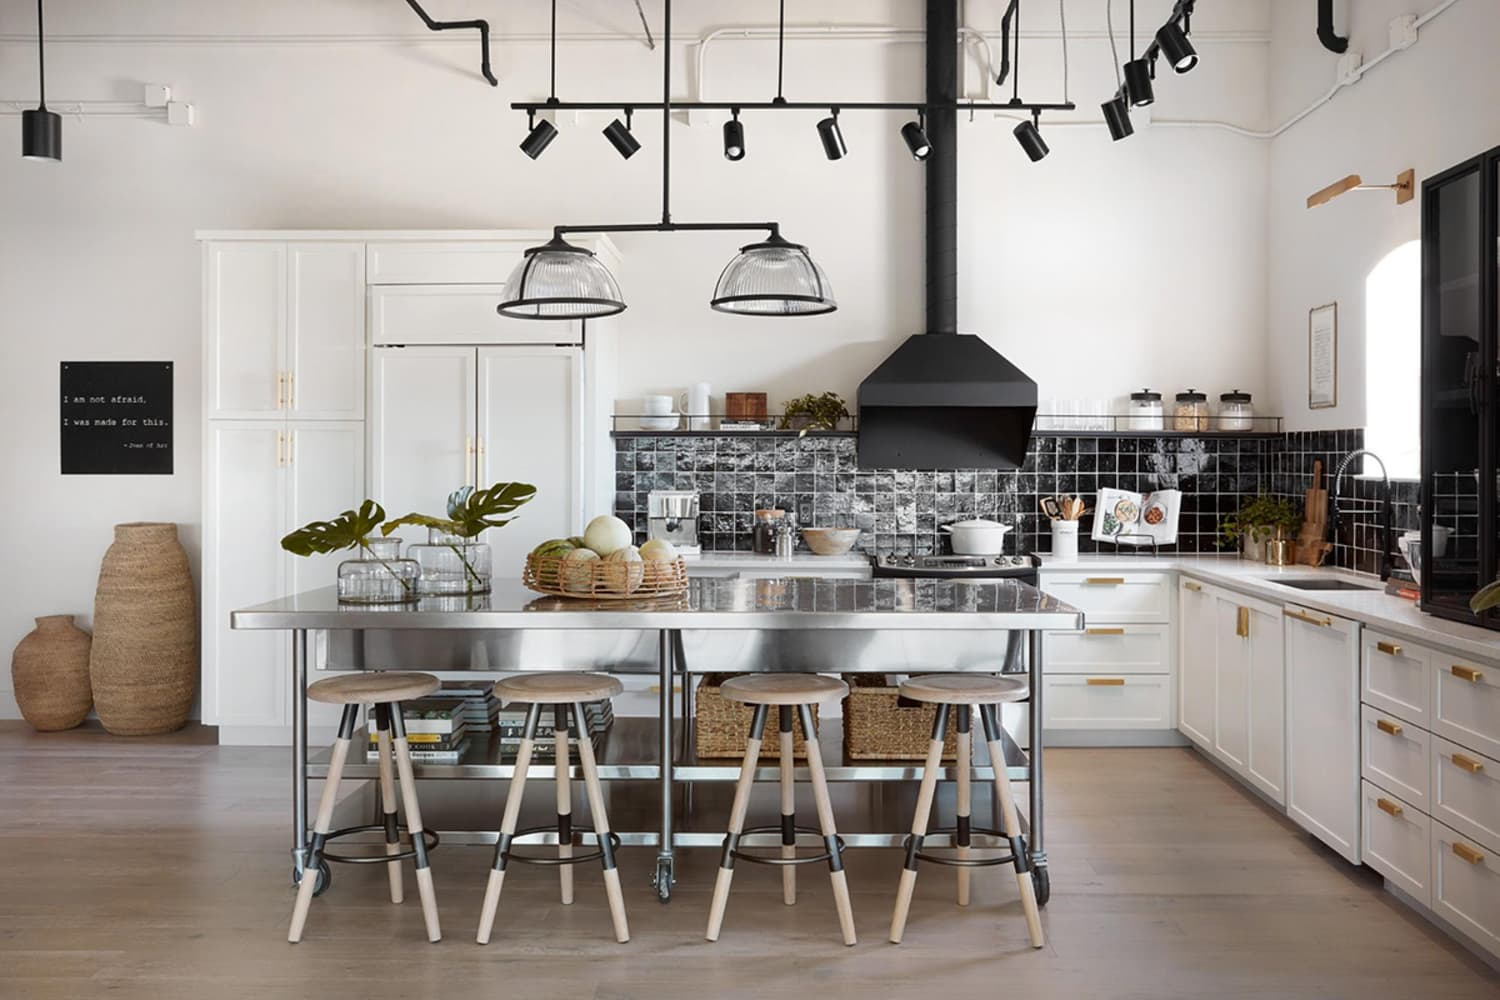 The 10 Most Brilliant Kitchen Design Ideas Chip and Joanna Ever Had on 'Fixer Upper'